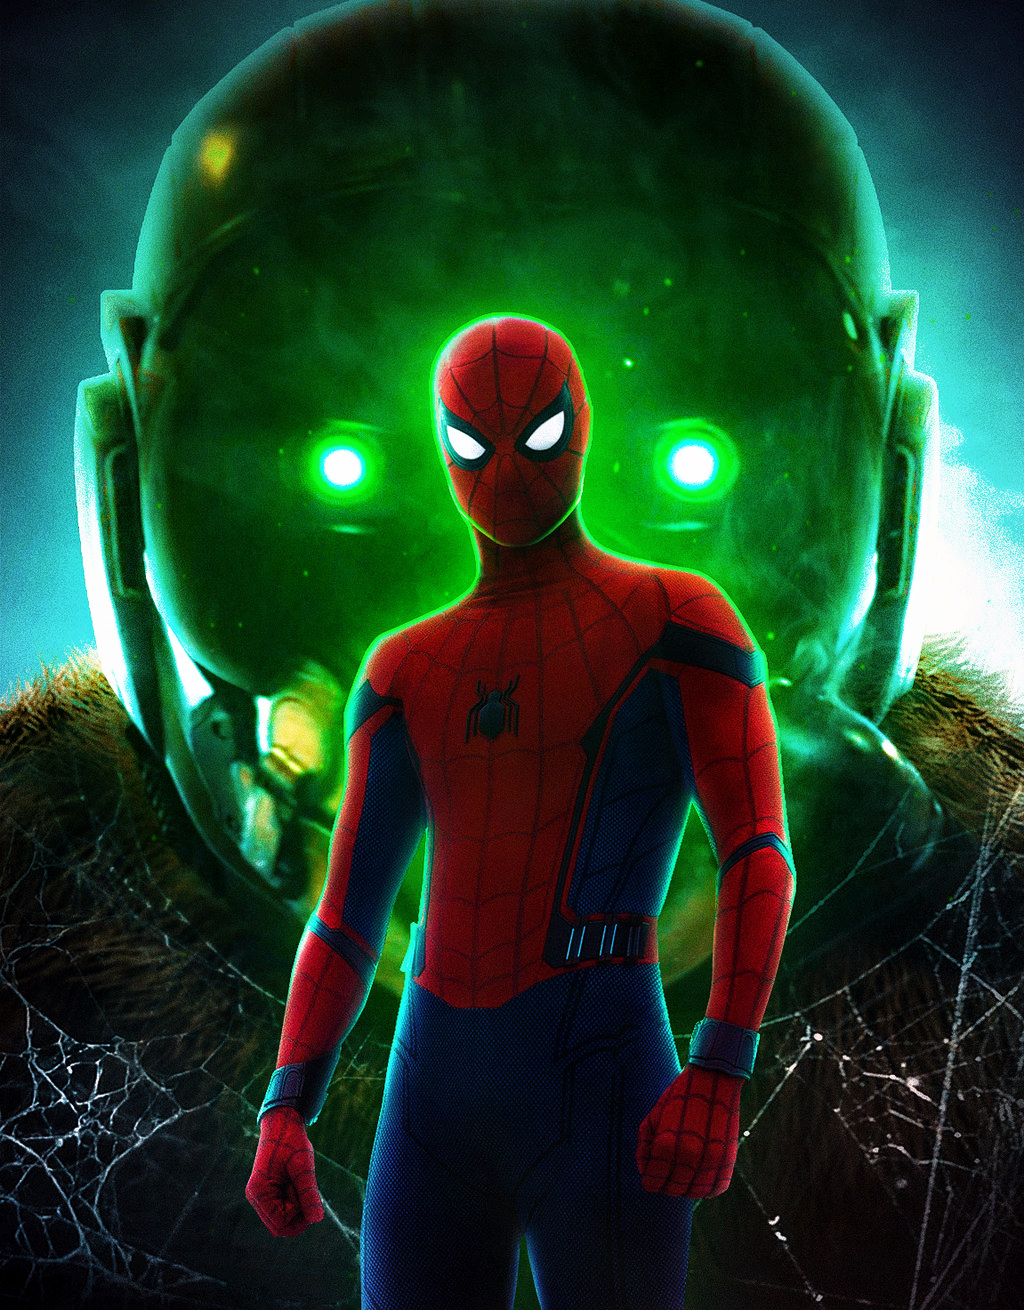 Spider-Man: Homecoming (2017) Poster 1 by CAMW1N on DeviantArt